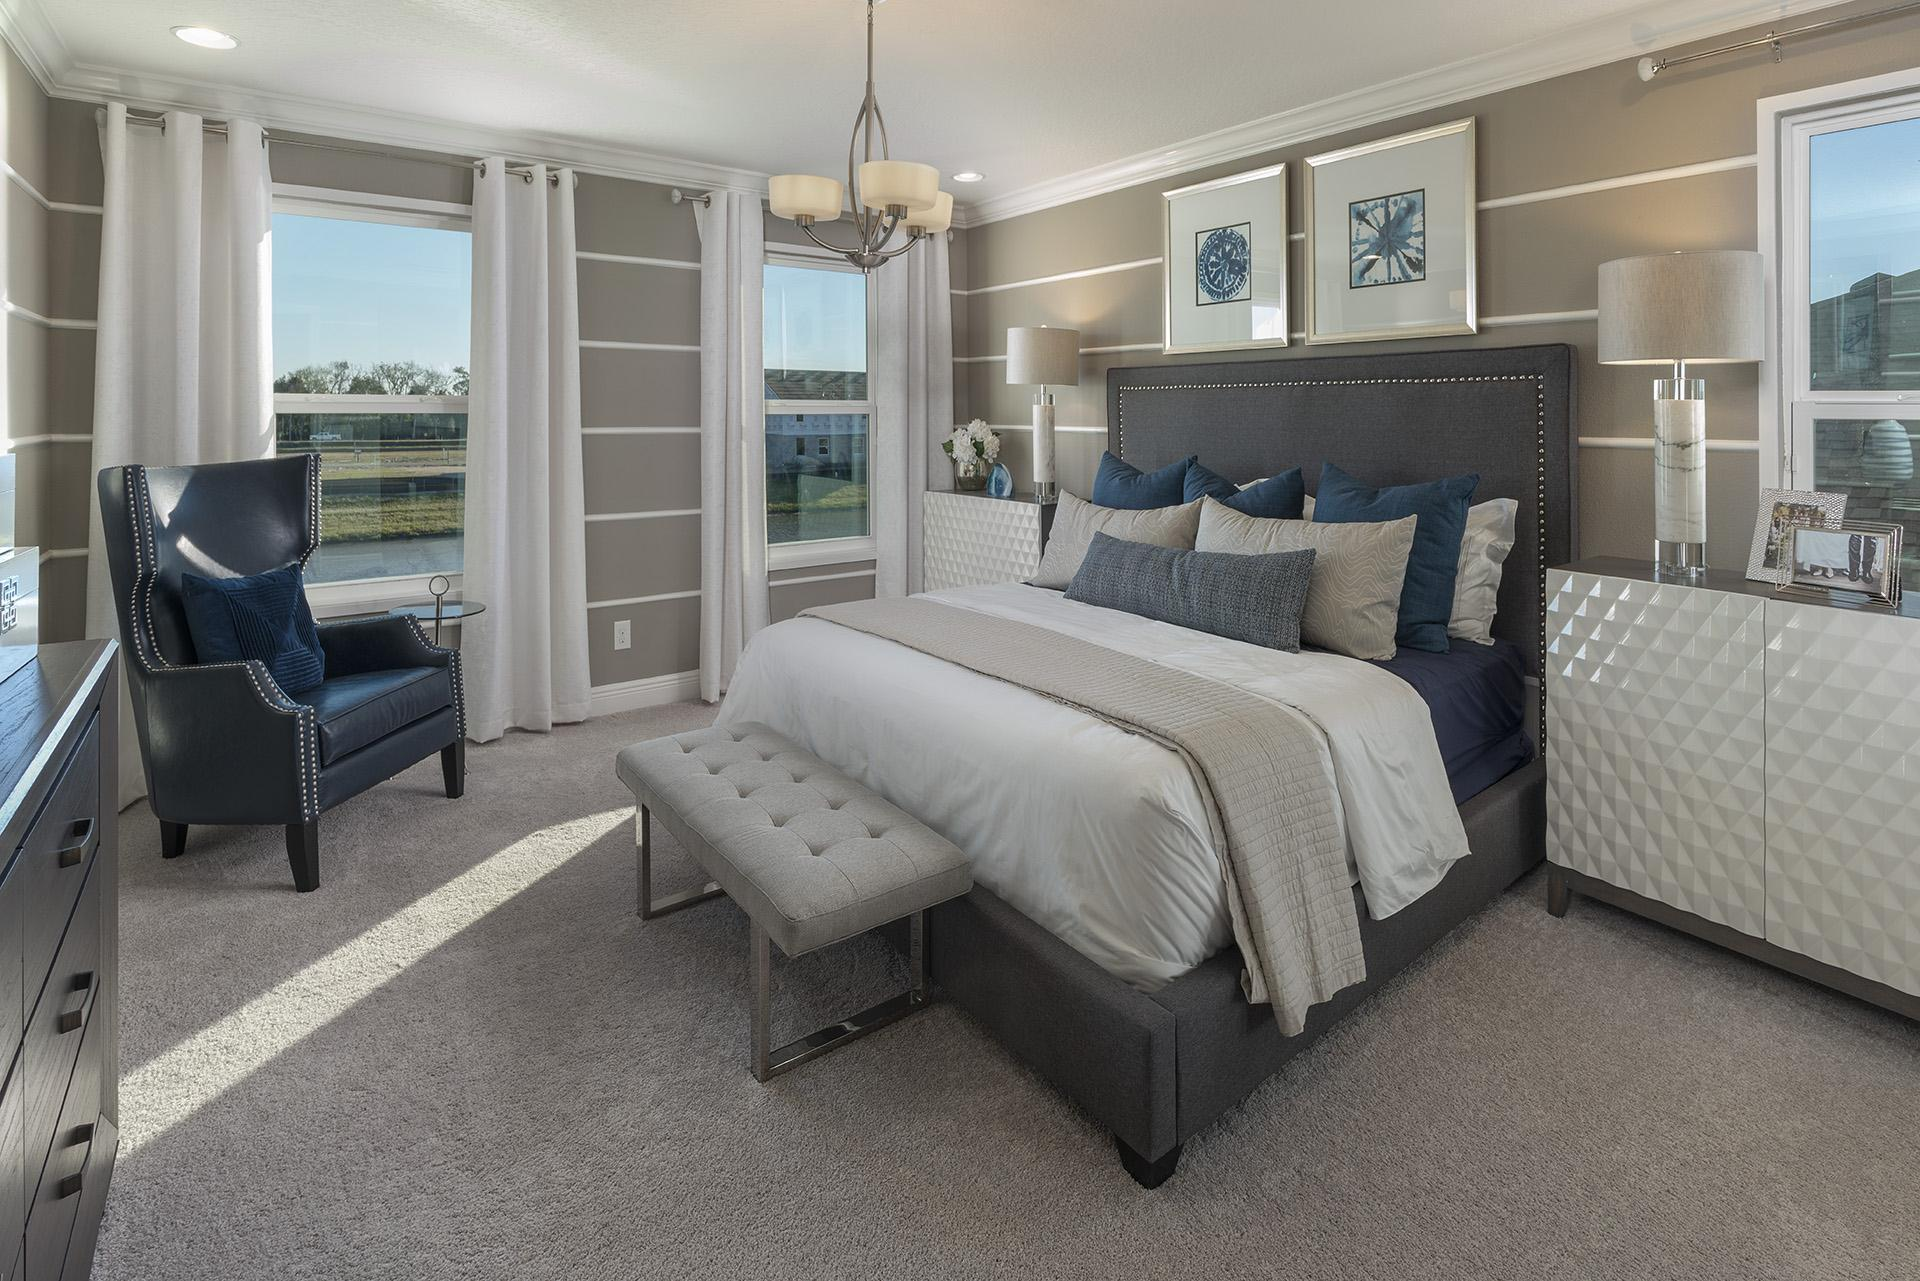 Bedroom featured in the Osceola Executive By Hanover Family Builders in Orlando, FL